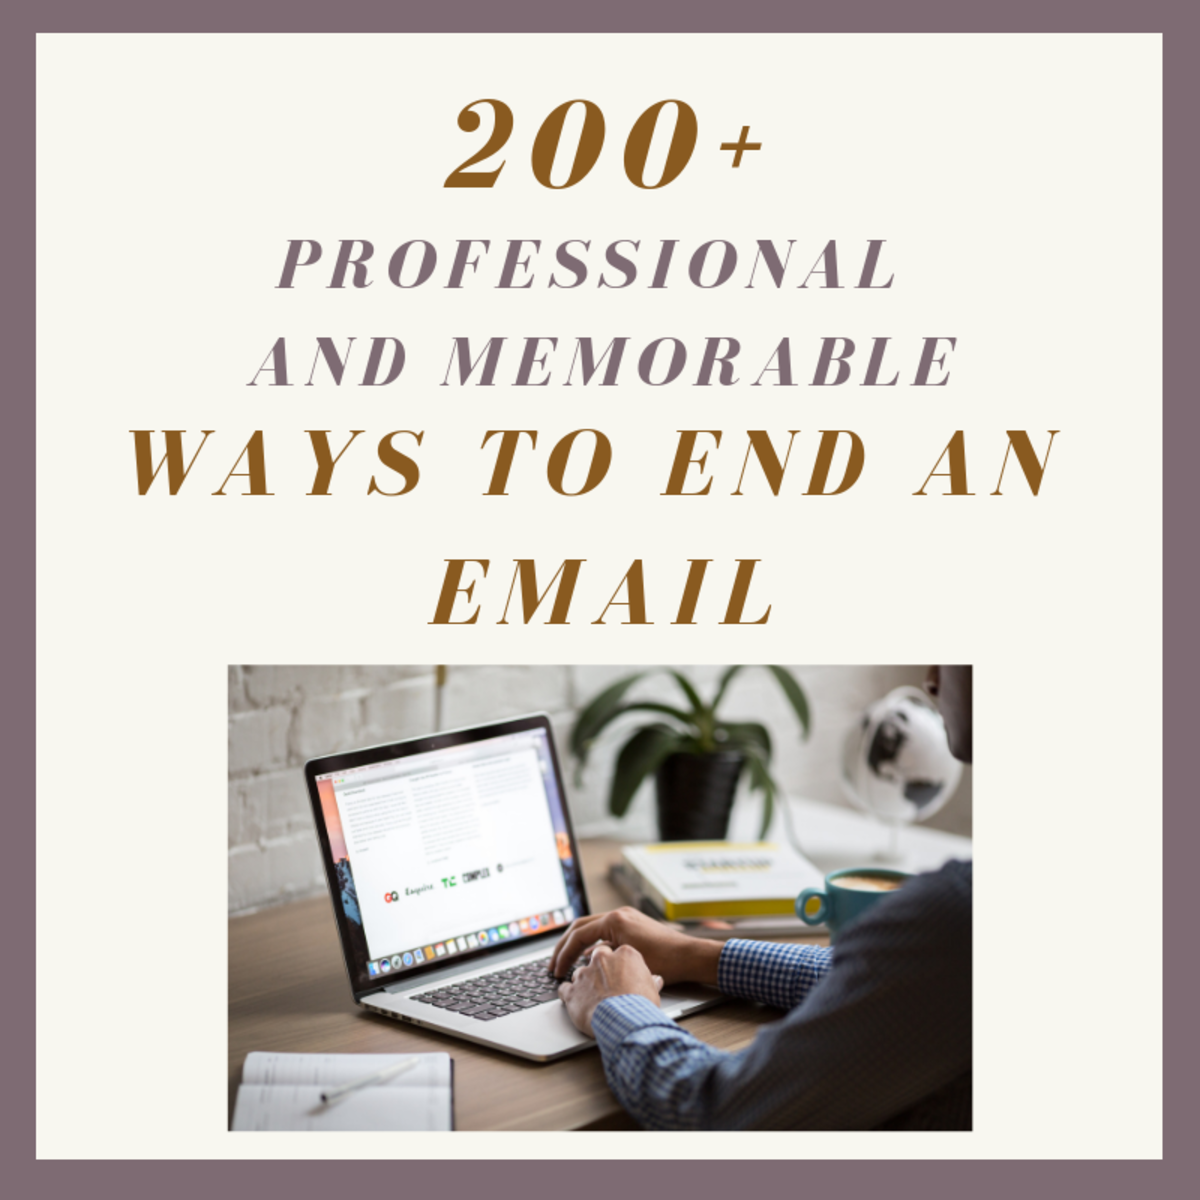 How to End an Email: A List of Sign-Offs for Every Situation